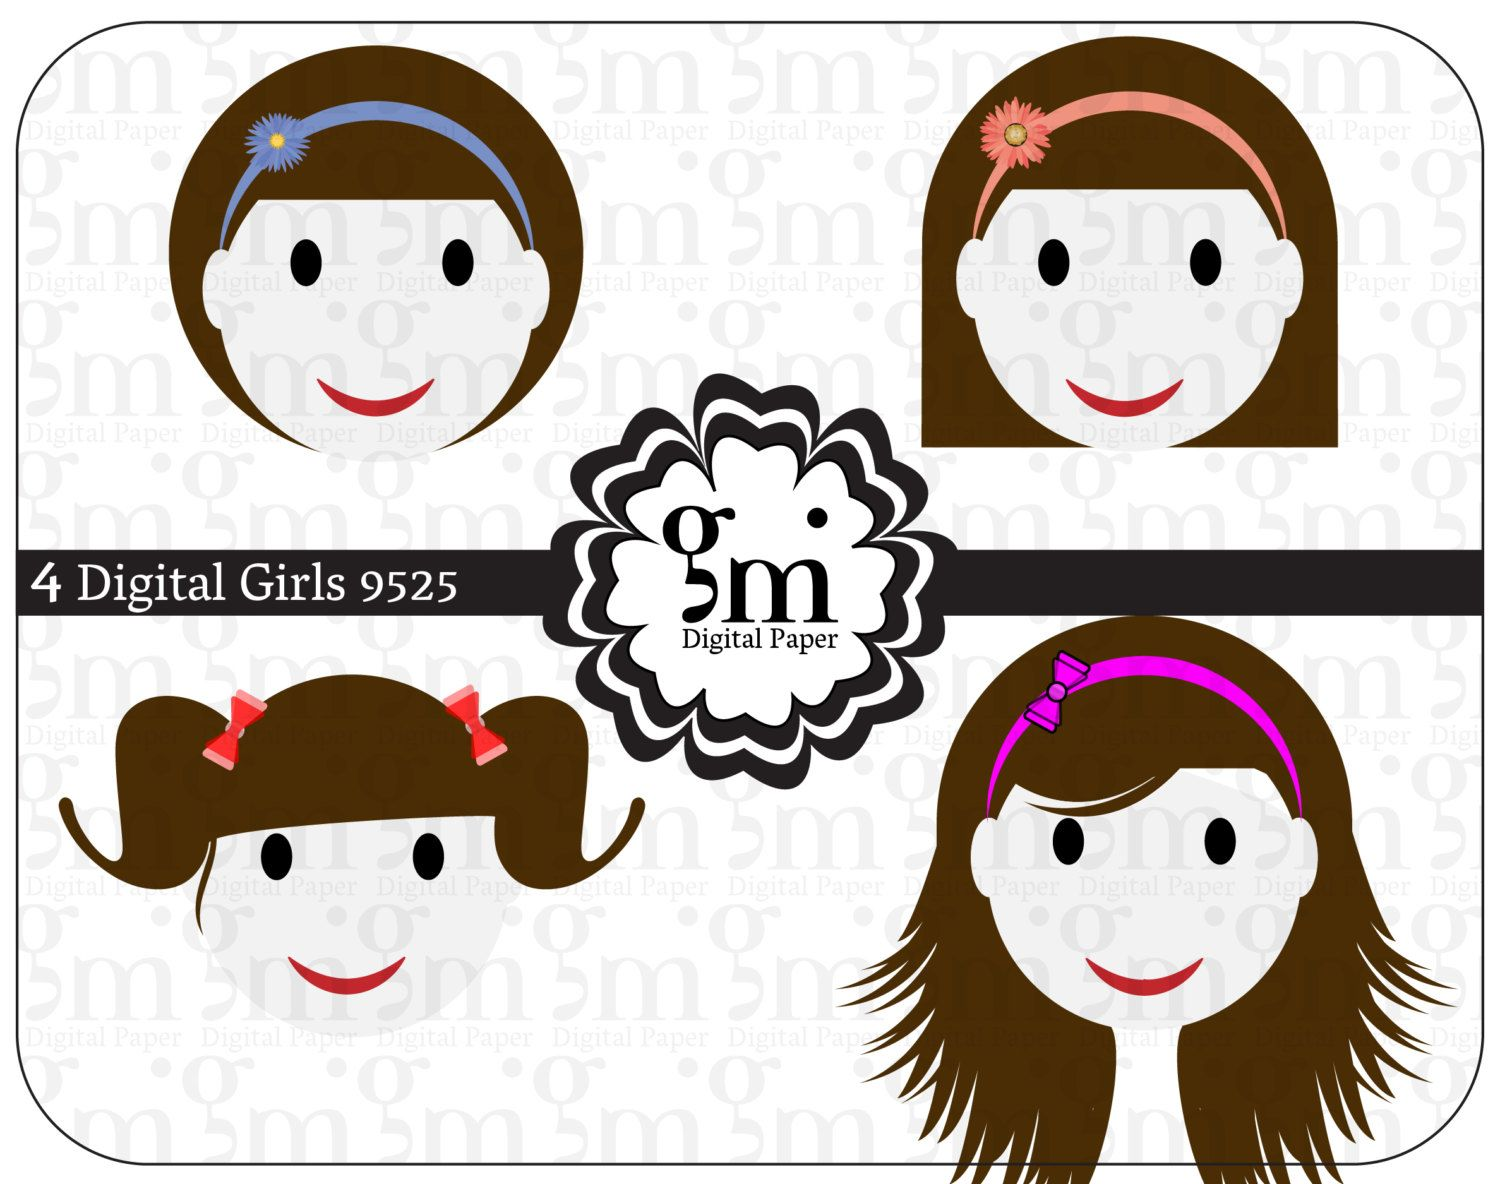 Girl Clipart, Cute Girl Clip Art, Instant Download, Girl Illustration, Girls Images, Digital Girl Clipart - pinned by pin4etsy.com